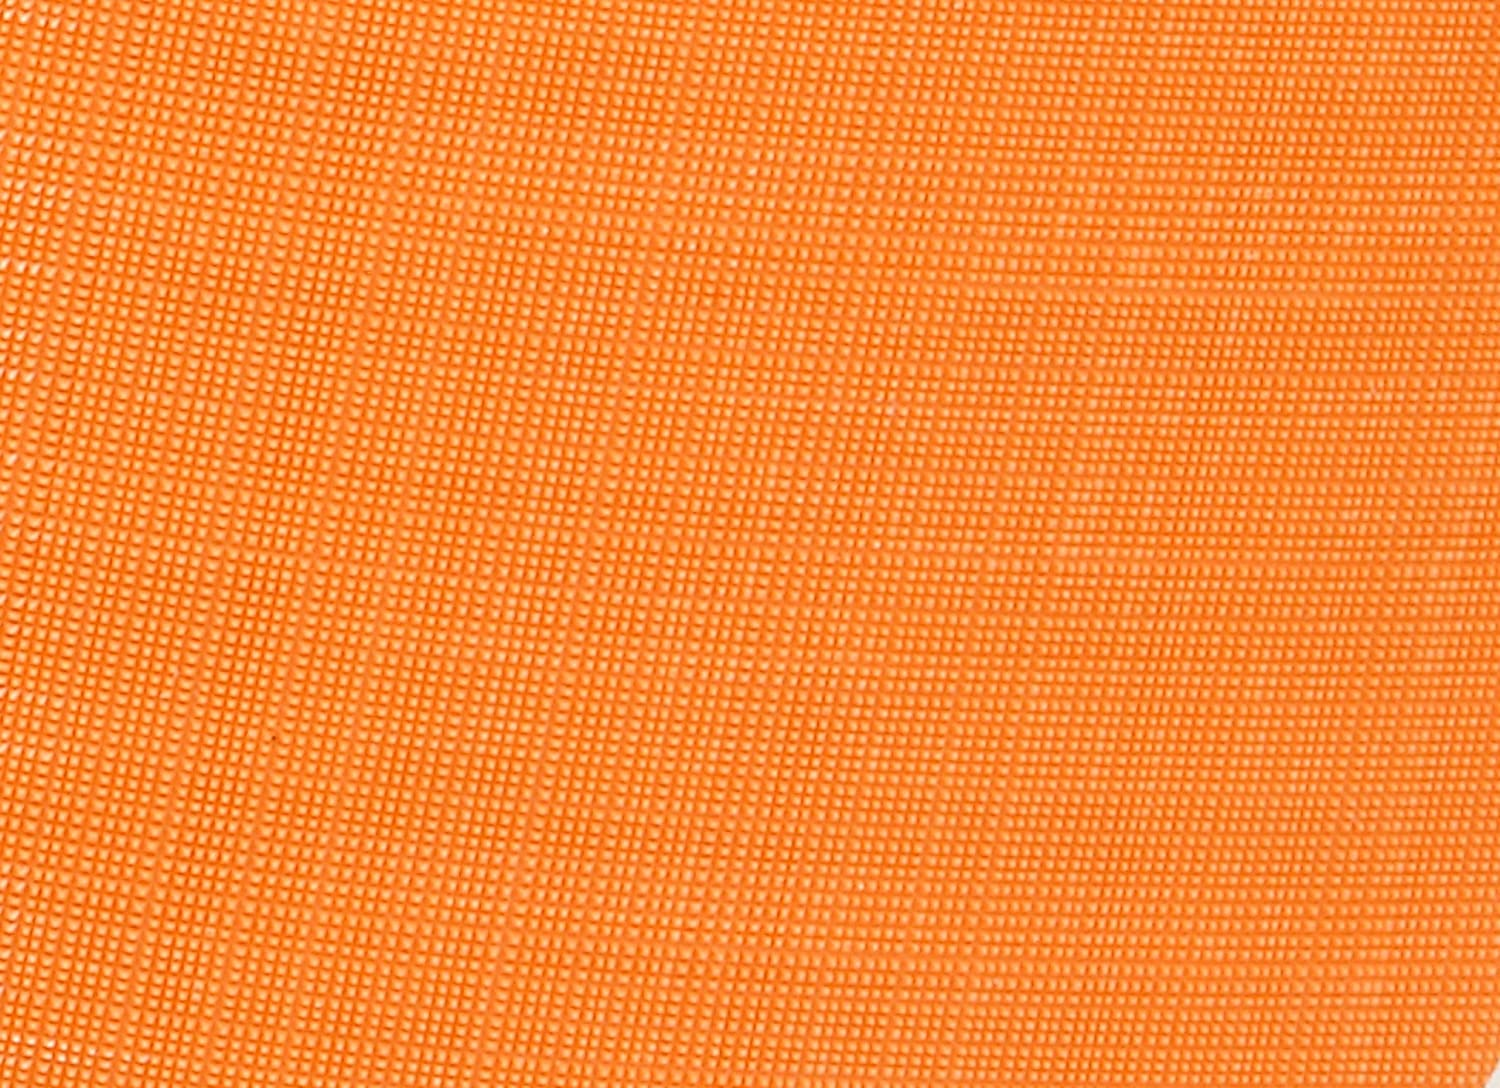 Aluminum Oxide Orange Flute Cut Pack of 50 2 in x 72 in 15 Micron Coating 3M 14901-case Microfinishing Film 5mil Belt 372L Cutting Angle 50 Per Case